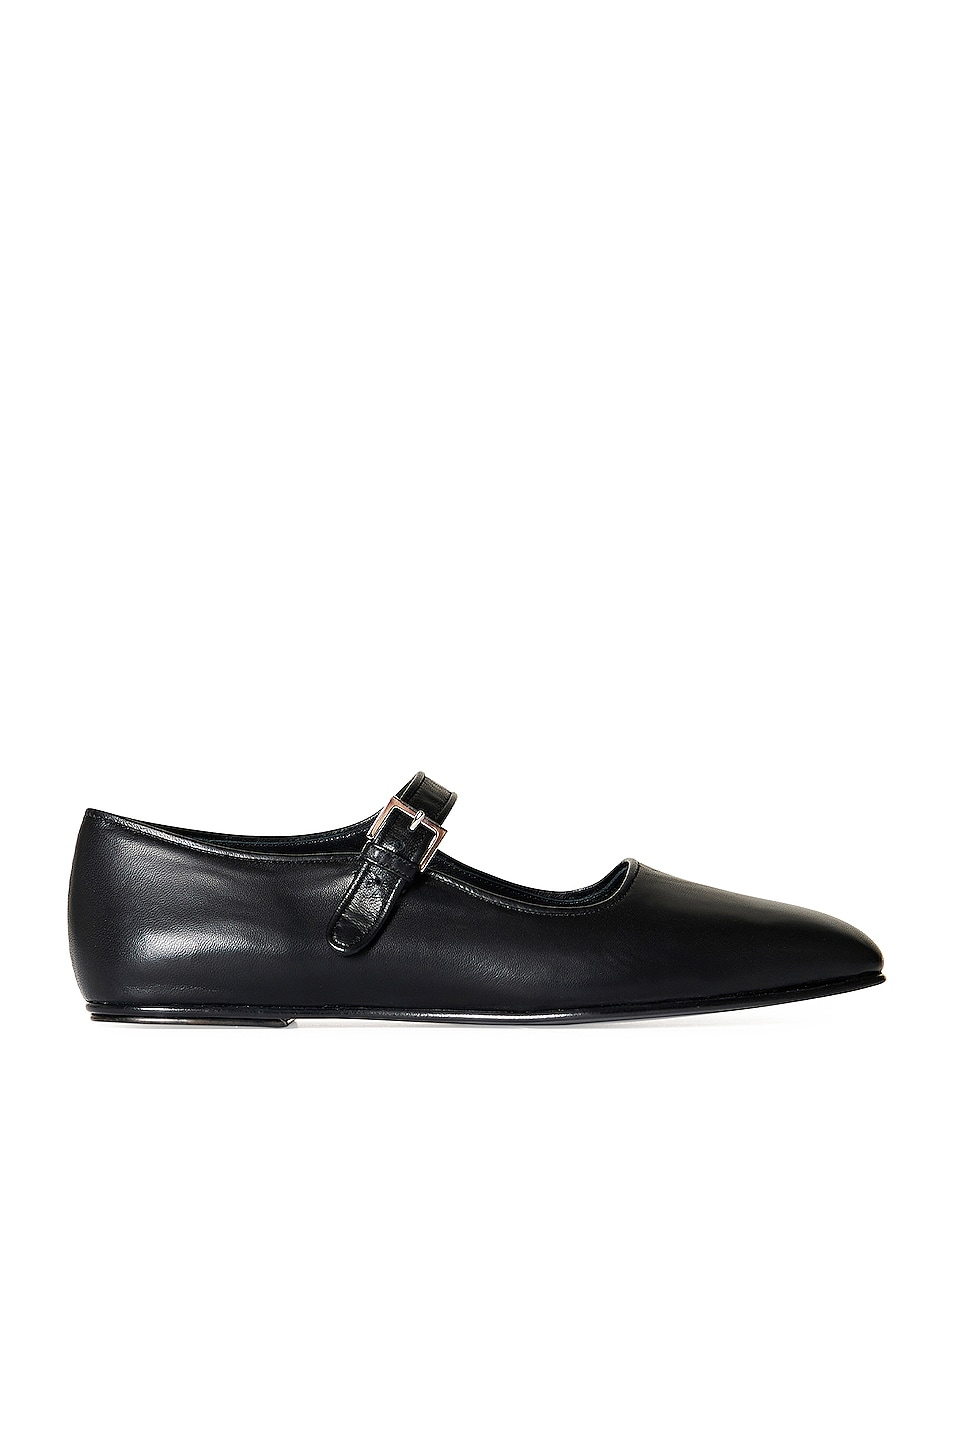 Image 1 of The Row Ava Mary Jane Flats in Black